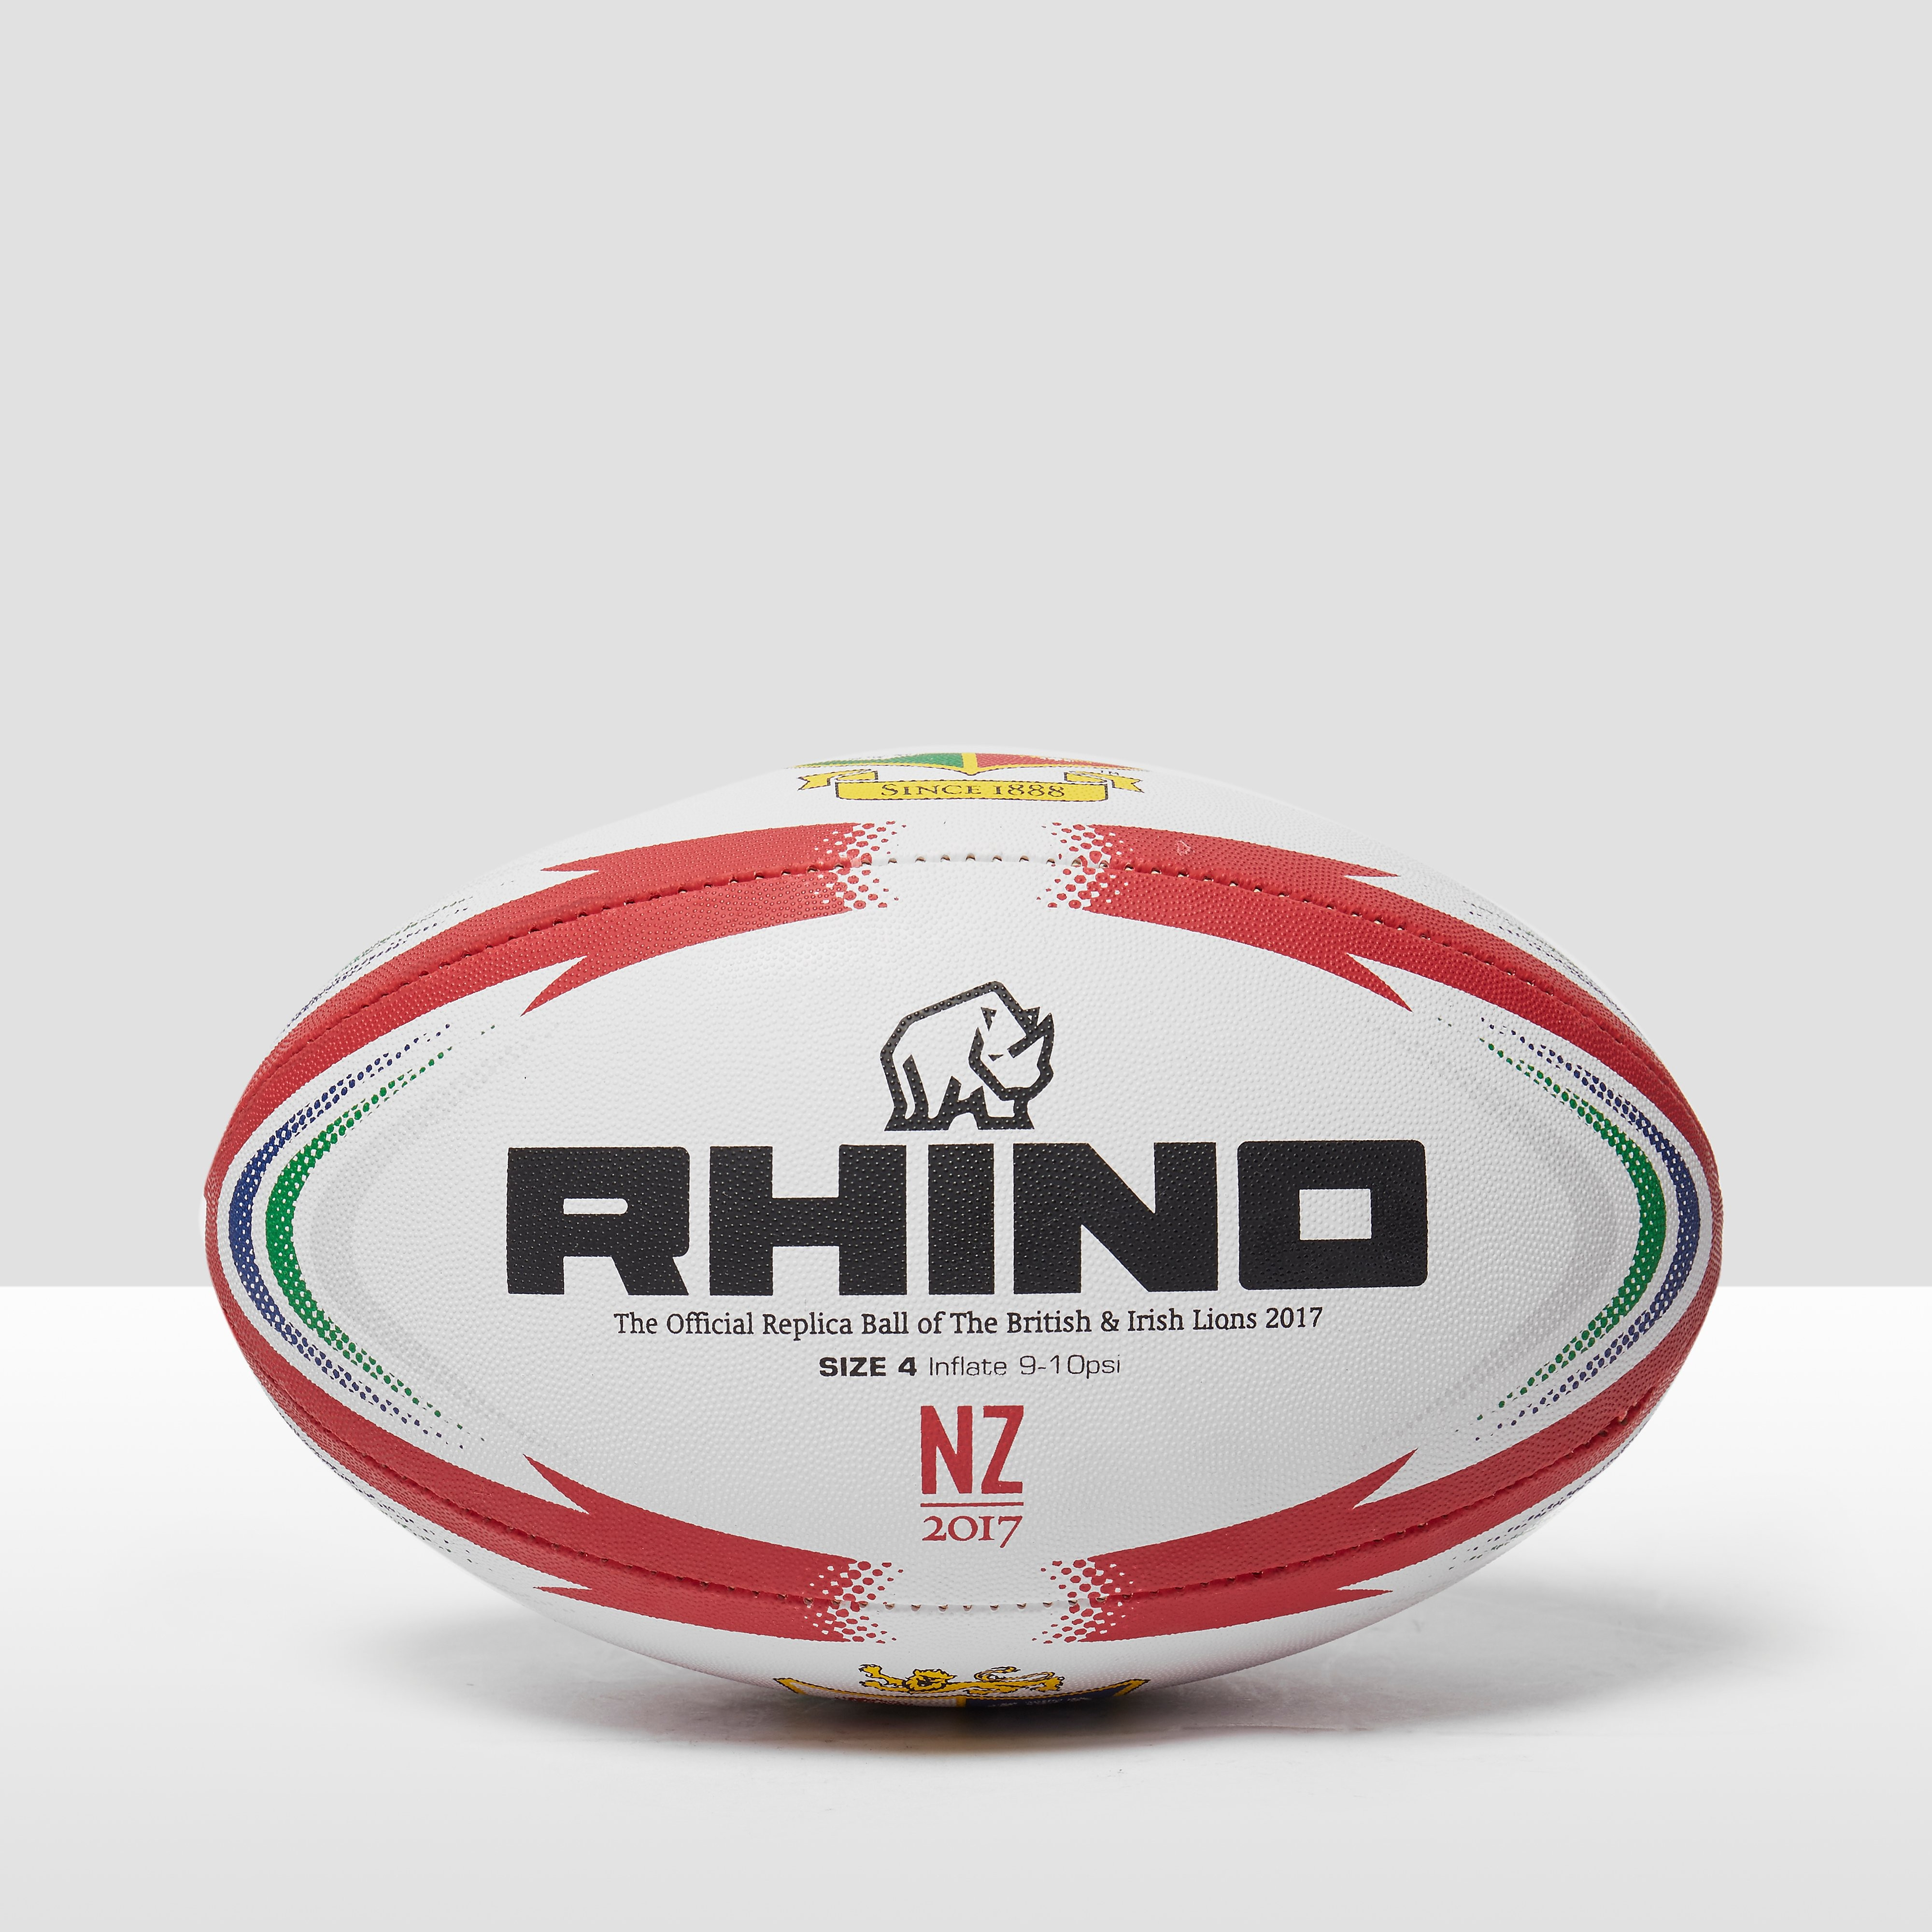 Rhino teamwear British & Irish Lions Official Replica Match Rugby Ball